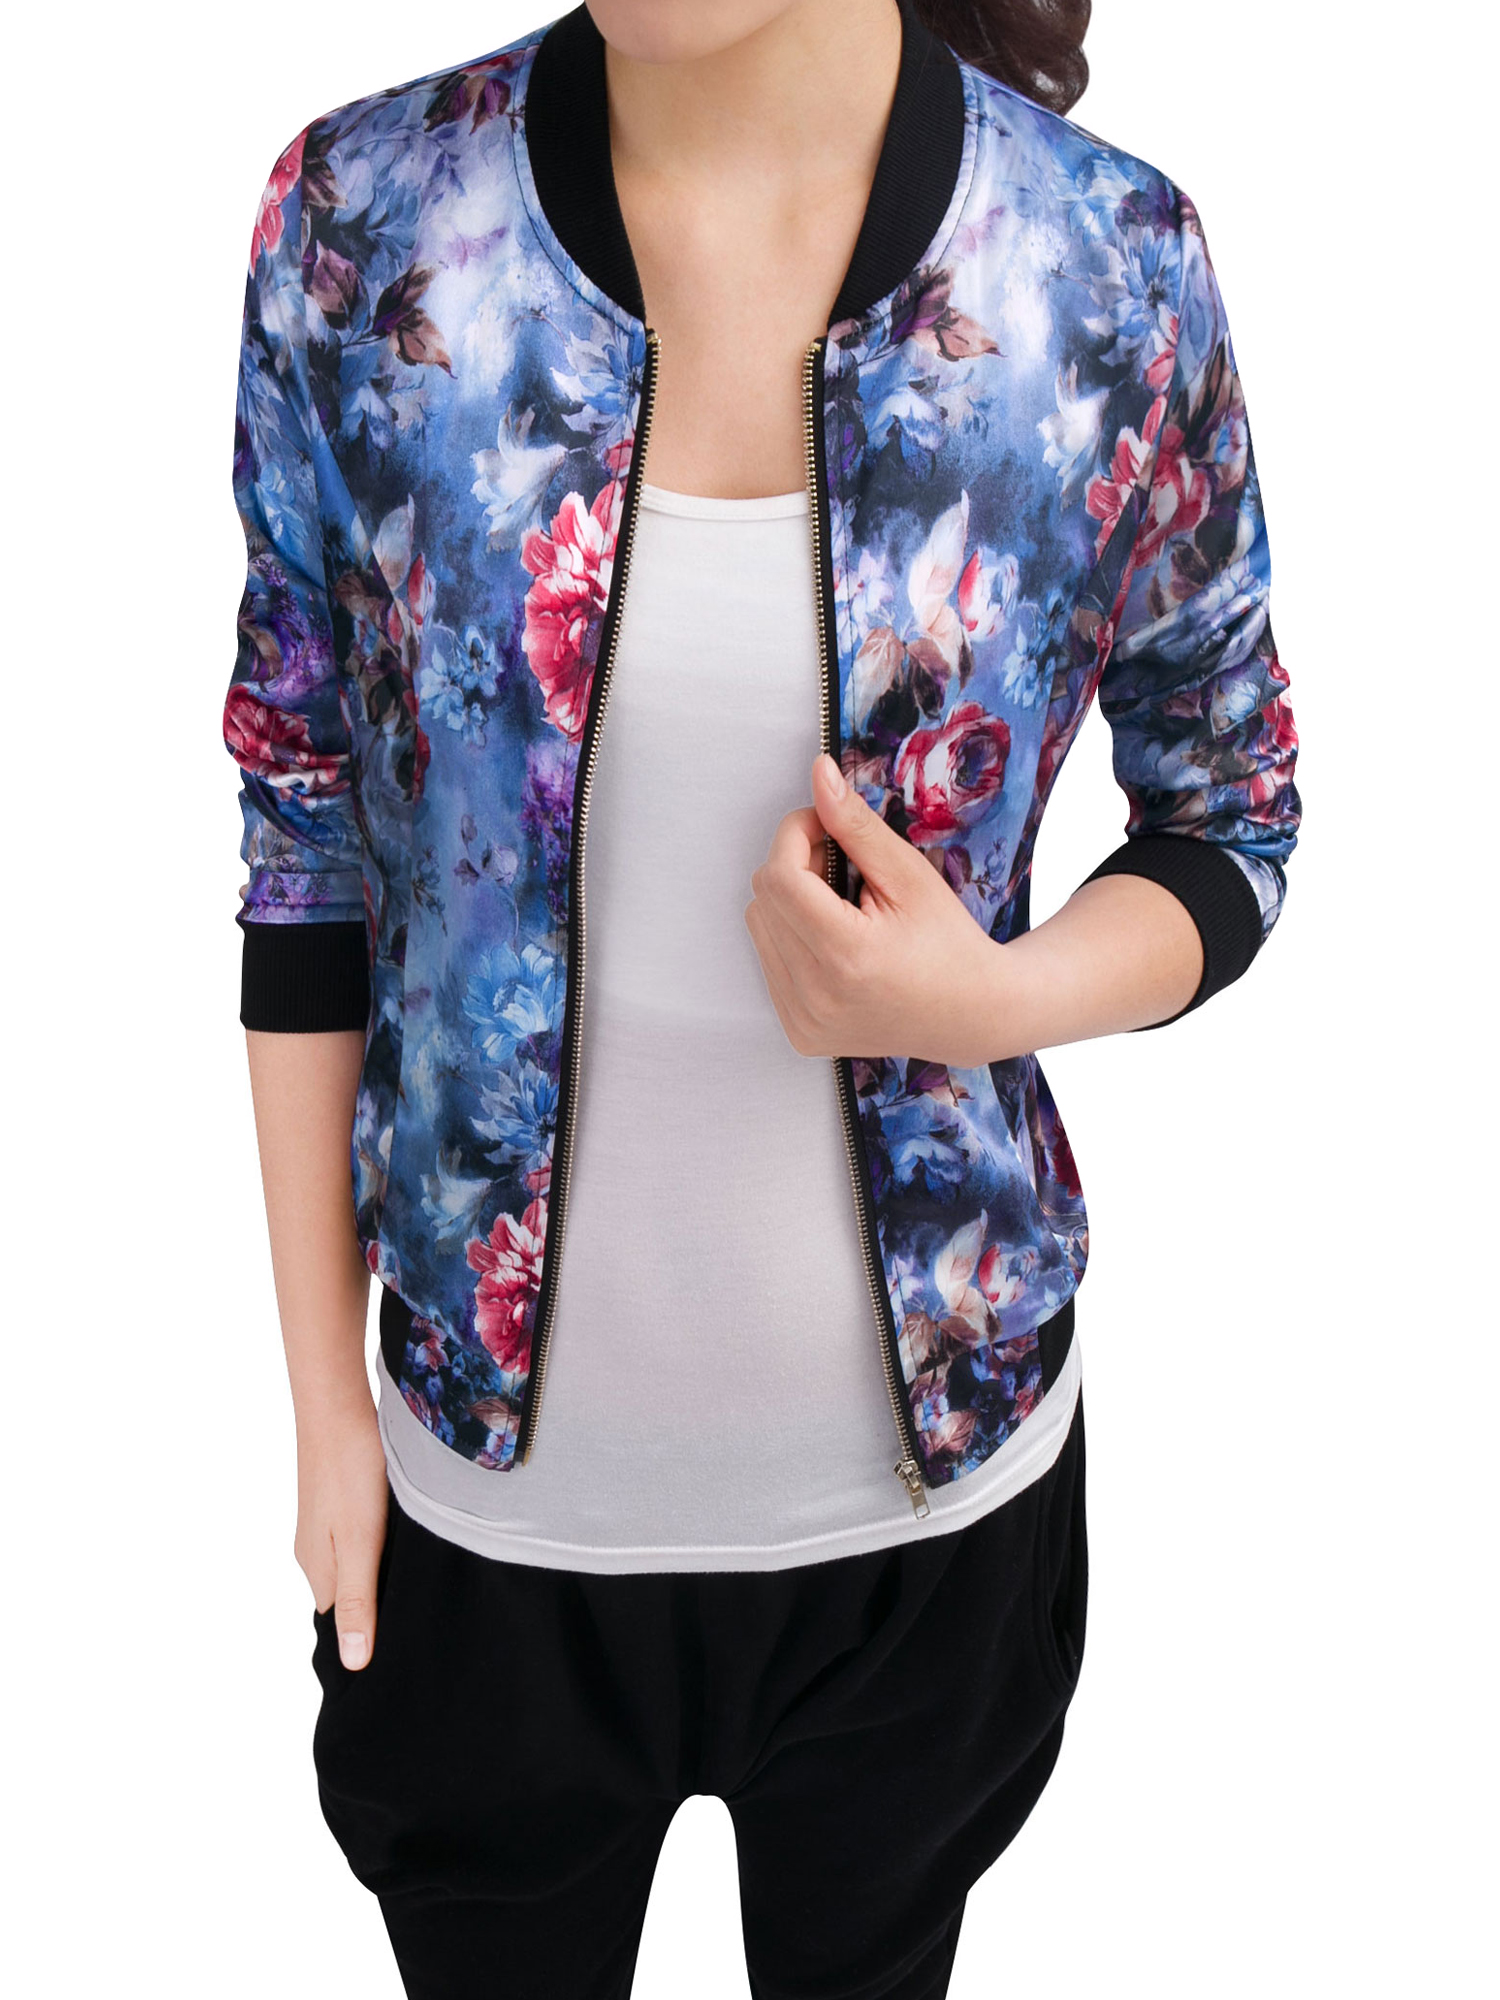 Women Ribbed Cuffs Slant Pockets Flower Print Stylish Jacket Blue L